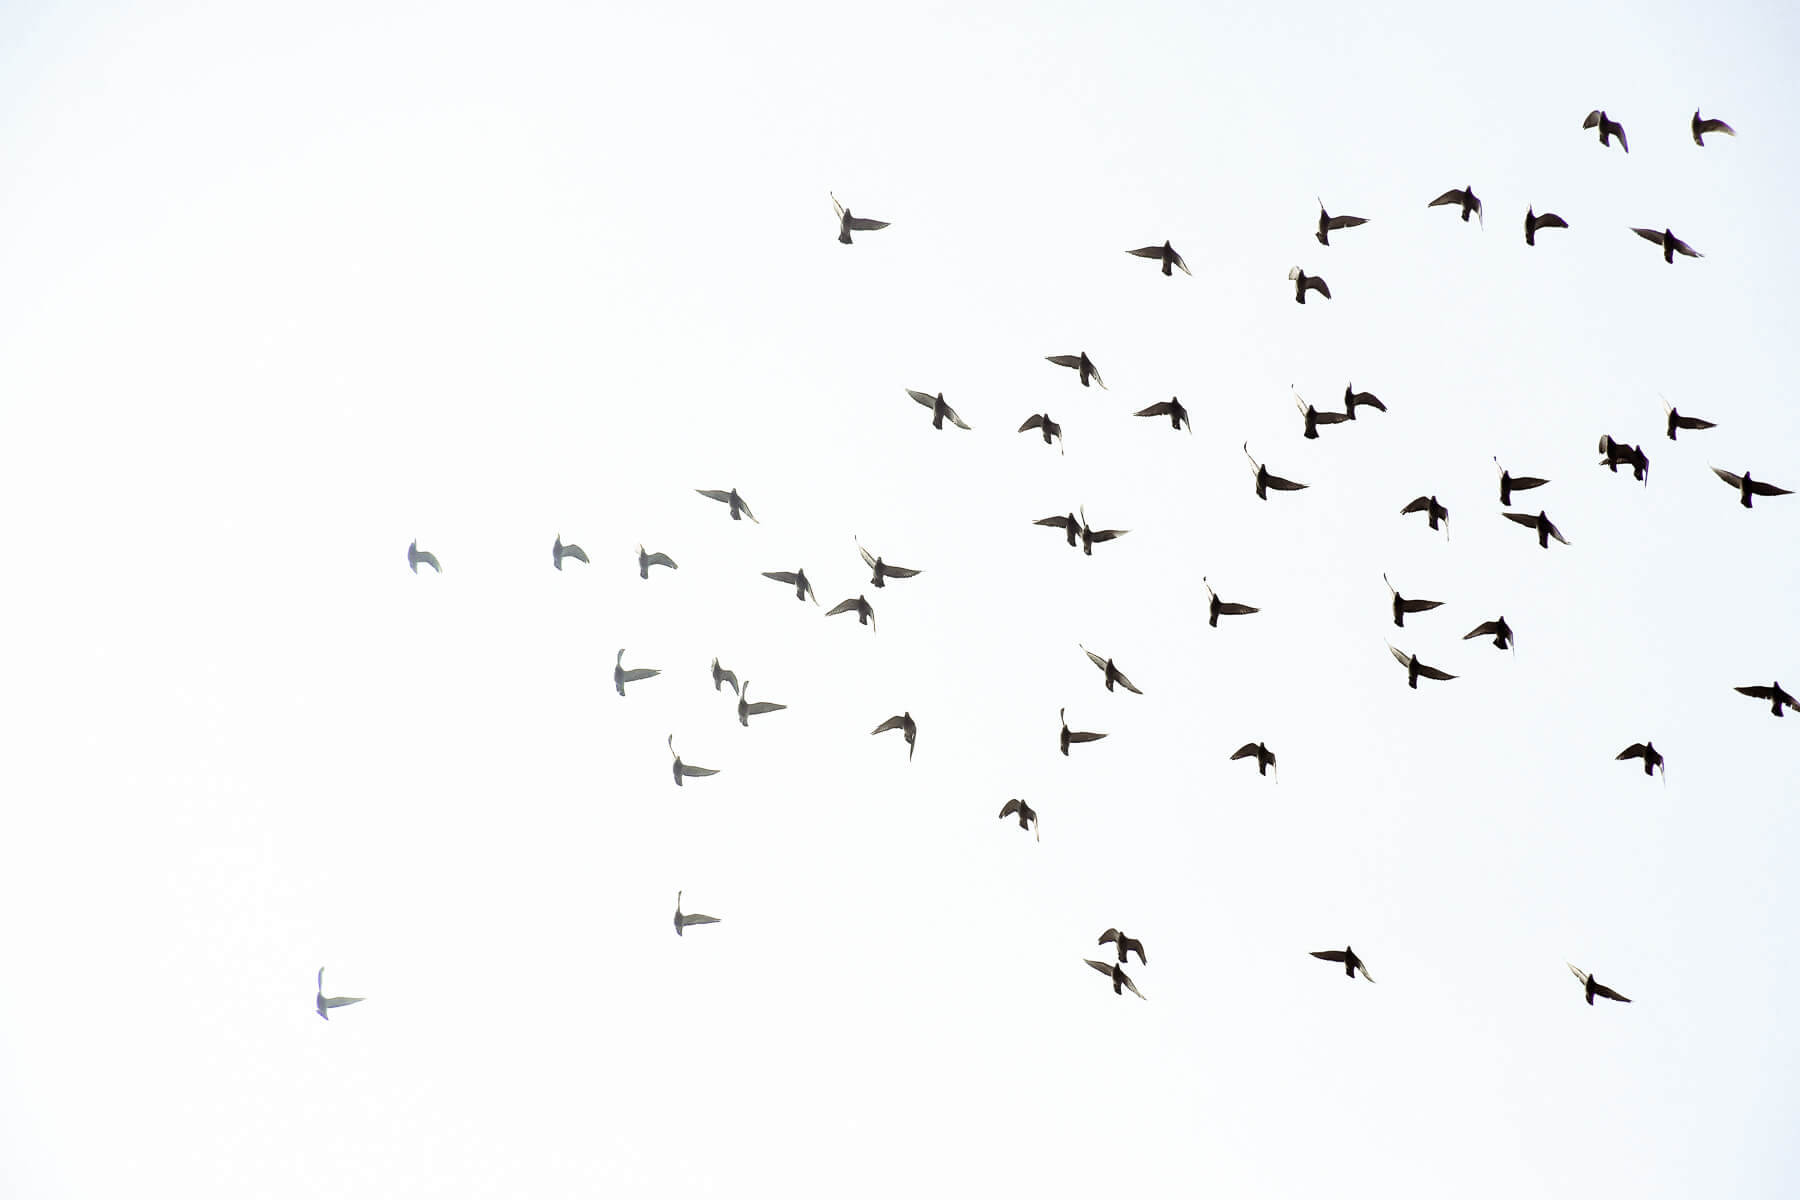 A flock of homing pigeons flying through the sky in Beijing